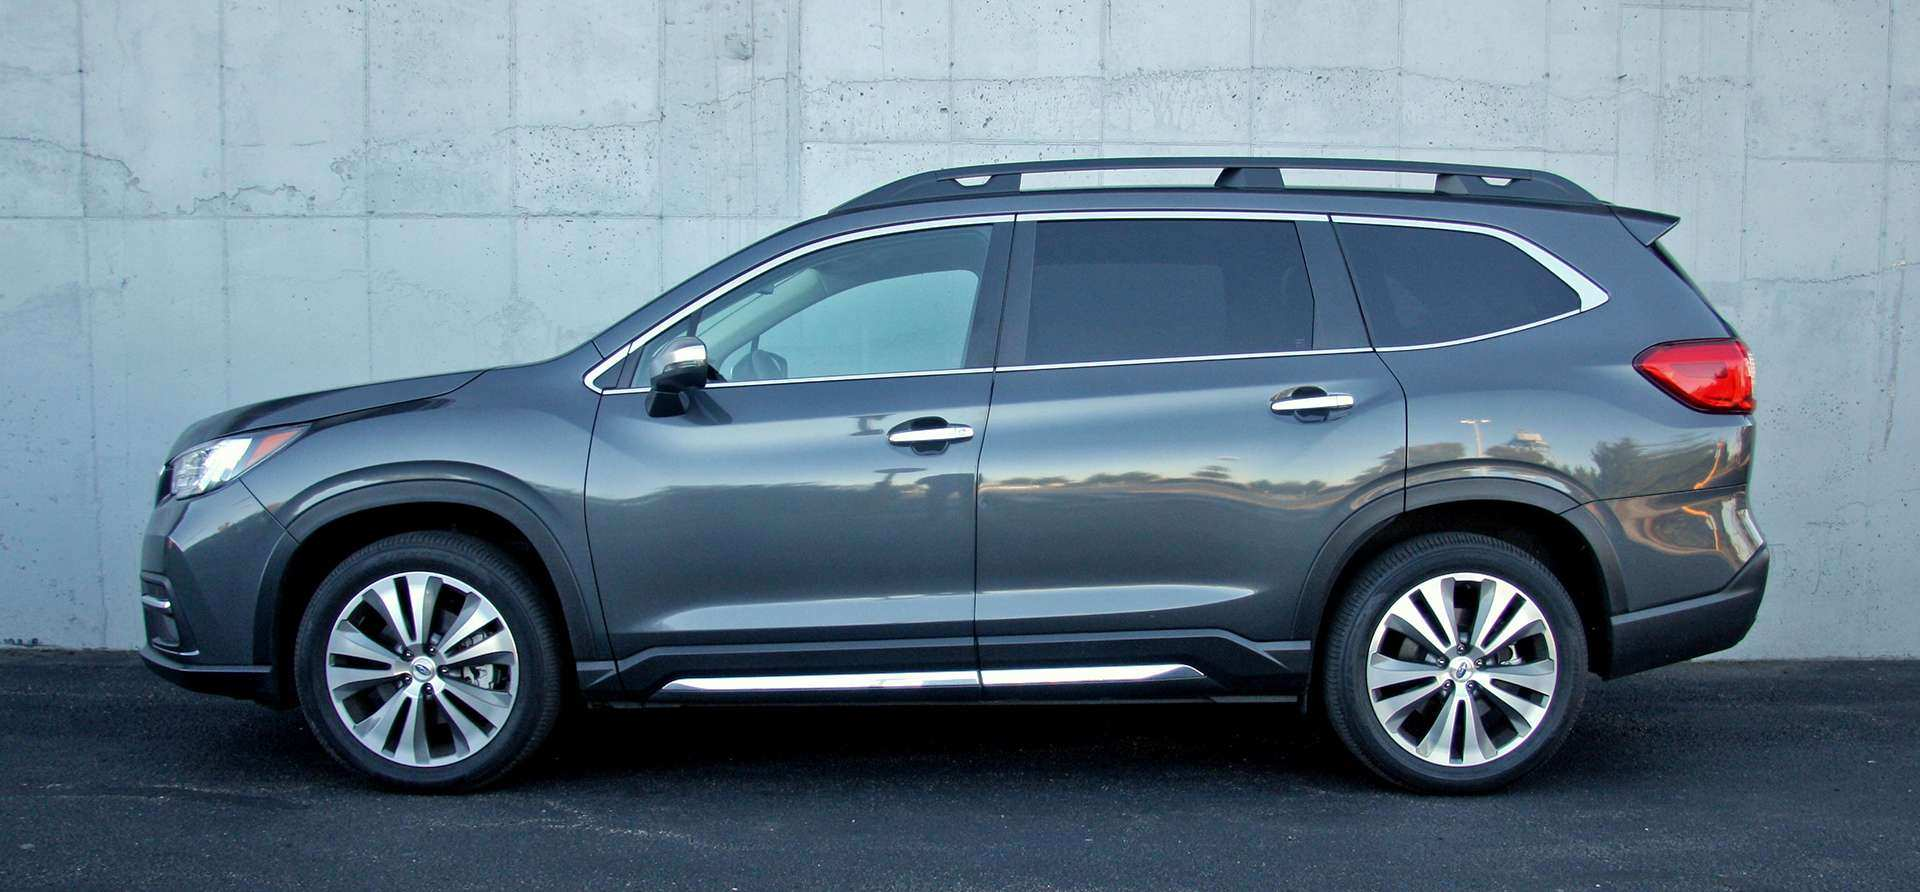 38 Gallery of 2019 Subaru Ascent 0 60 Model with 2019 Subaru Ascent 0 60